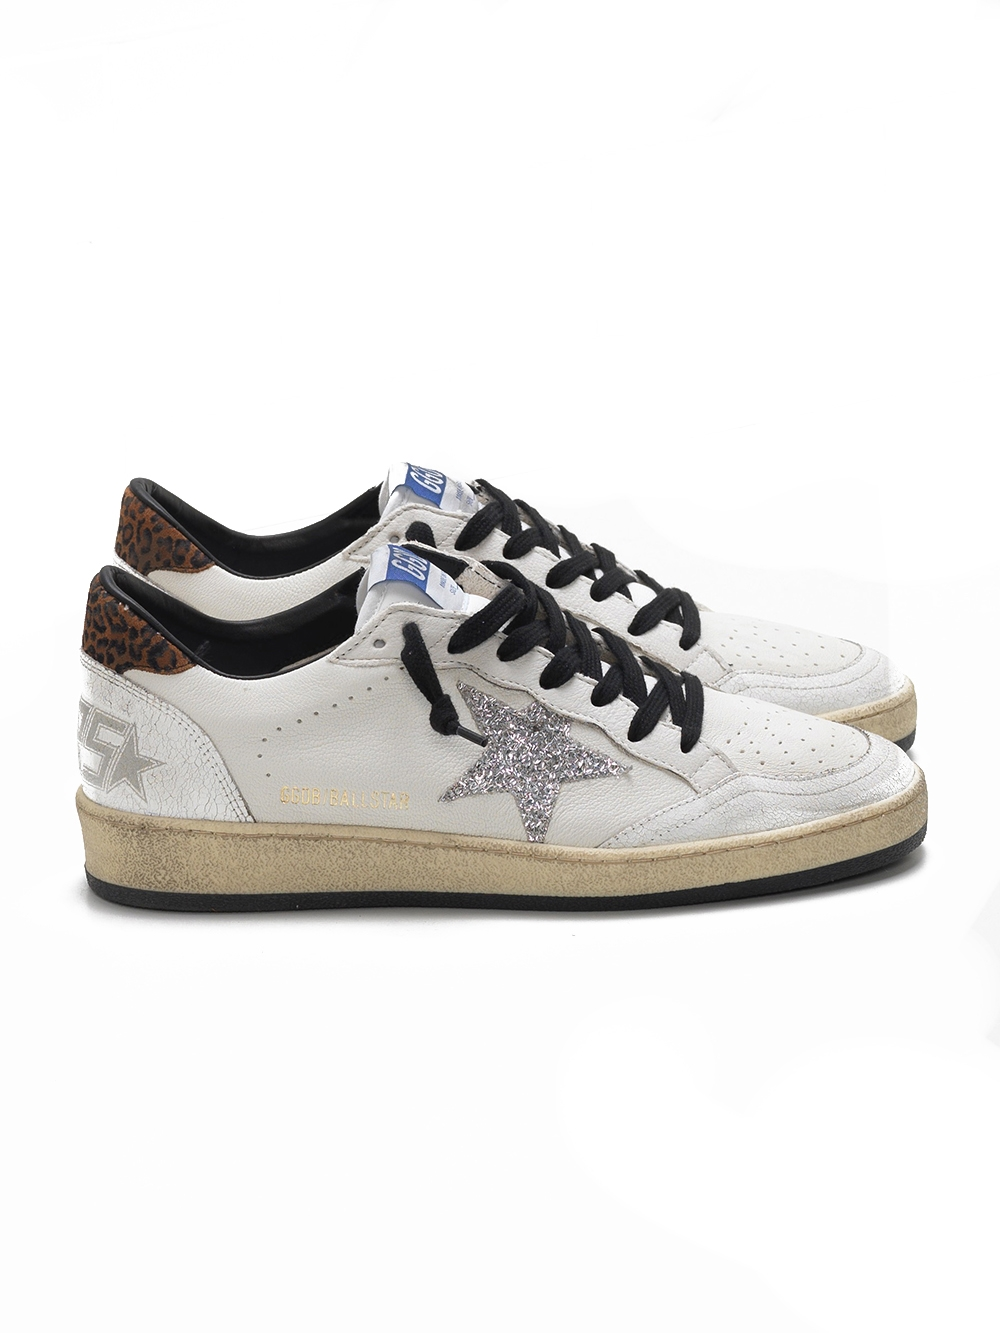 Ball Star sneakers: white leather